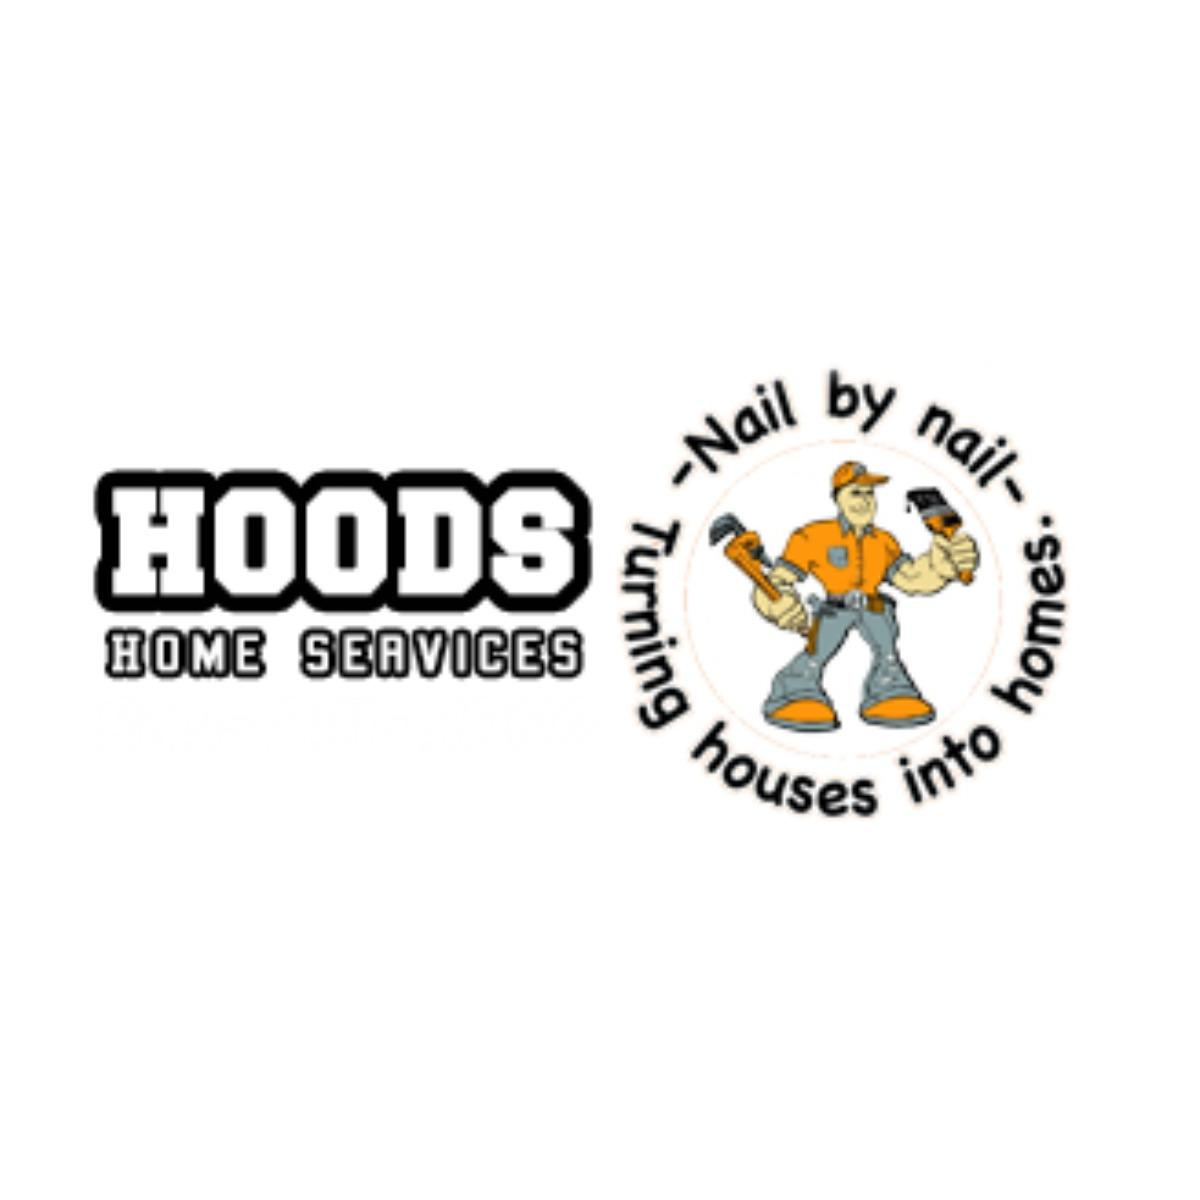 Hood's Home Services